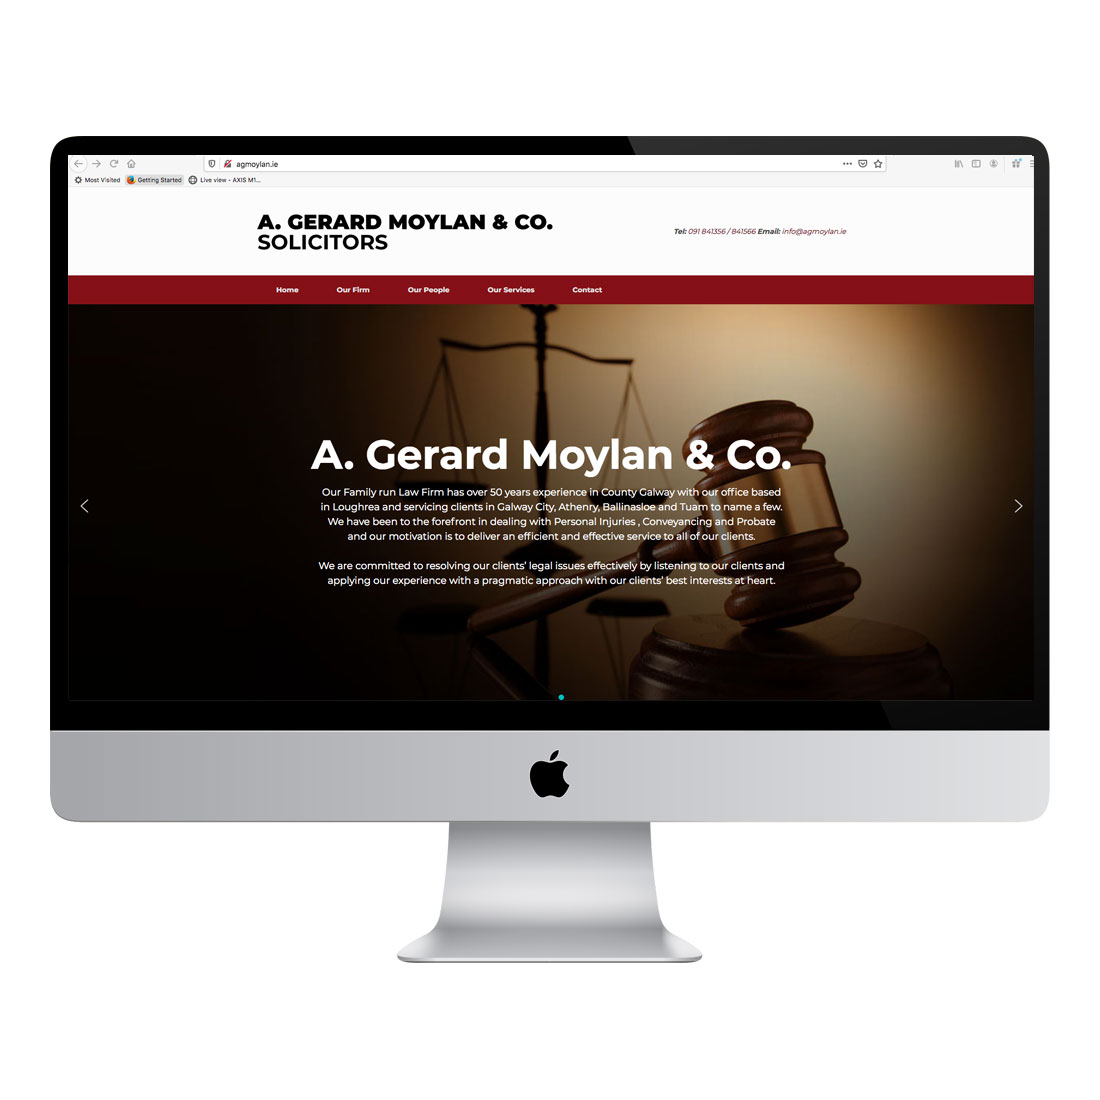 AG Moylan website design